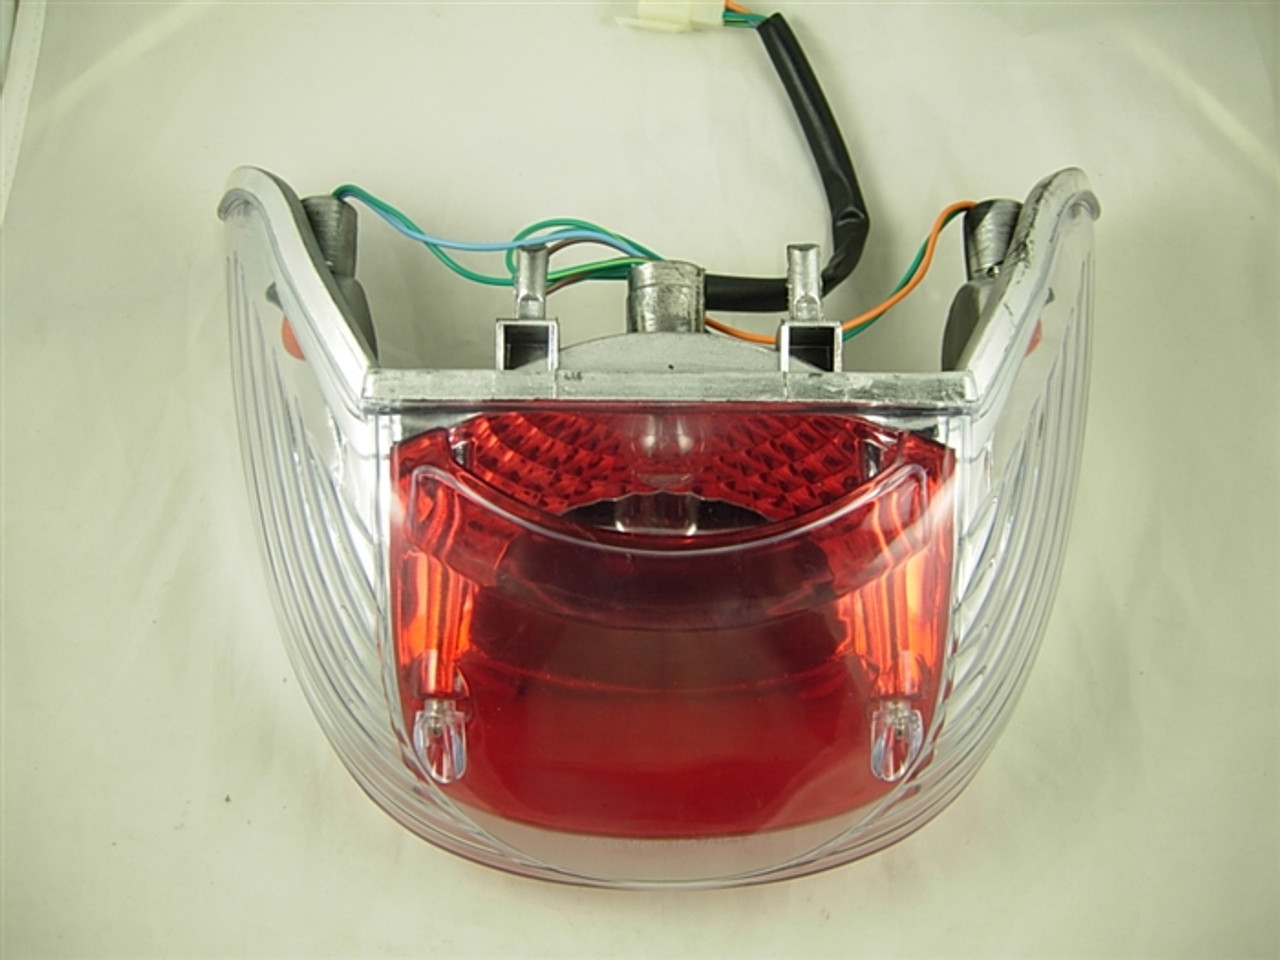 tail light assembly 10883-a50-1